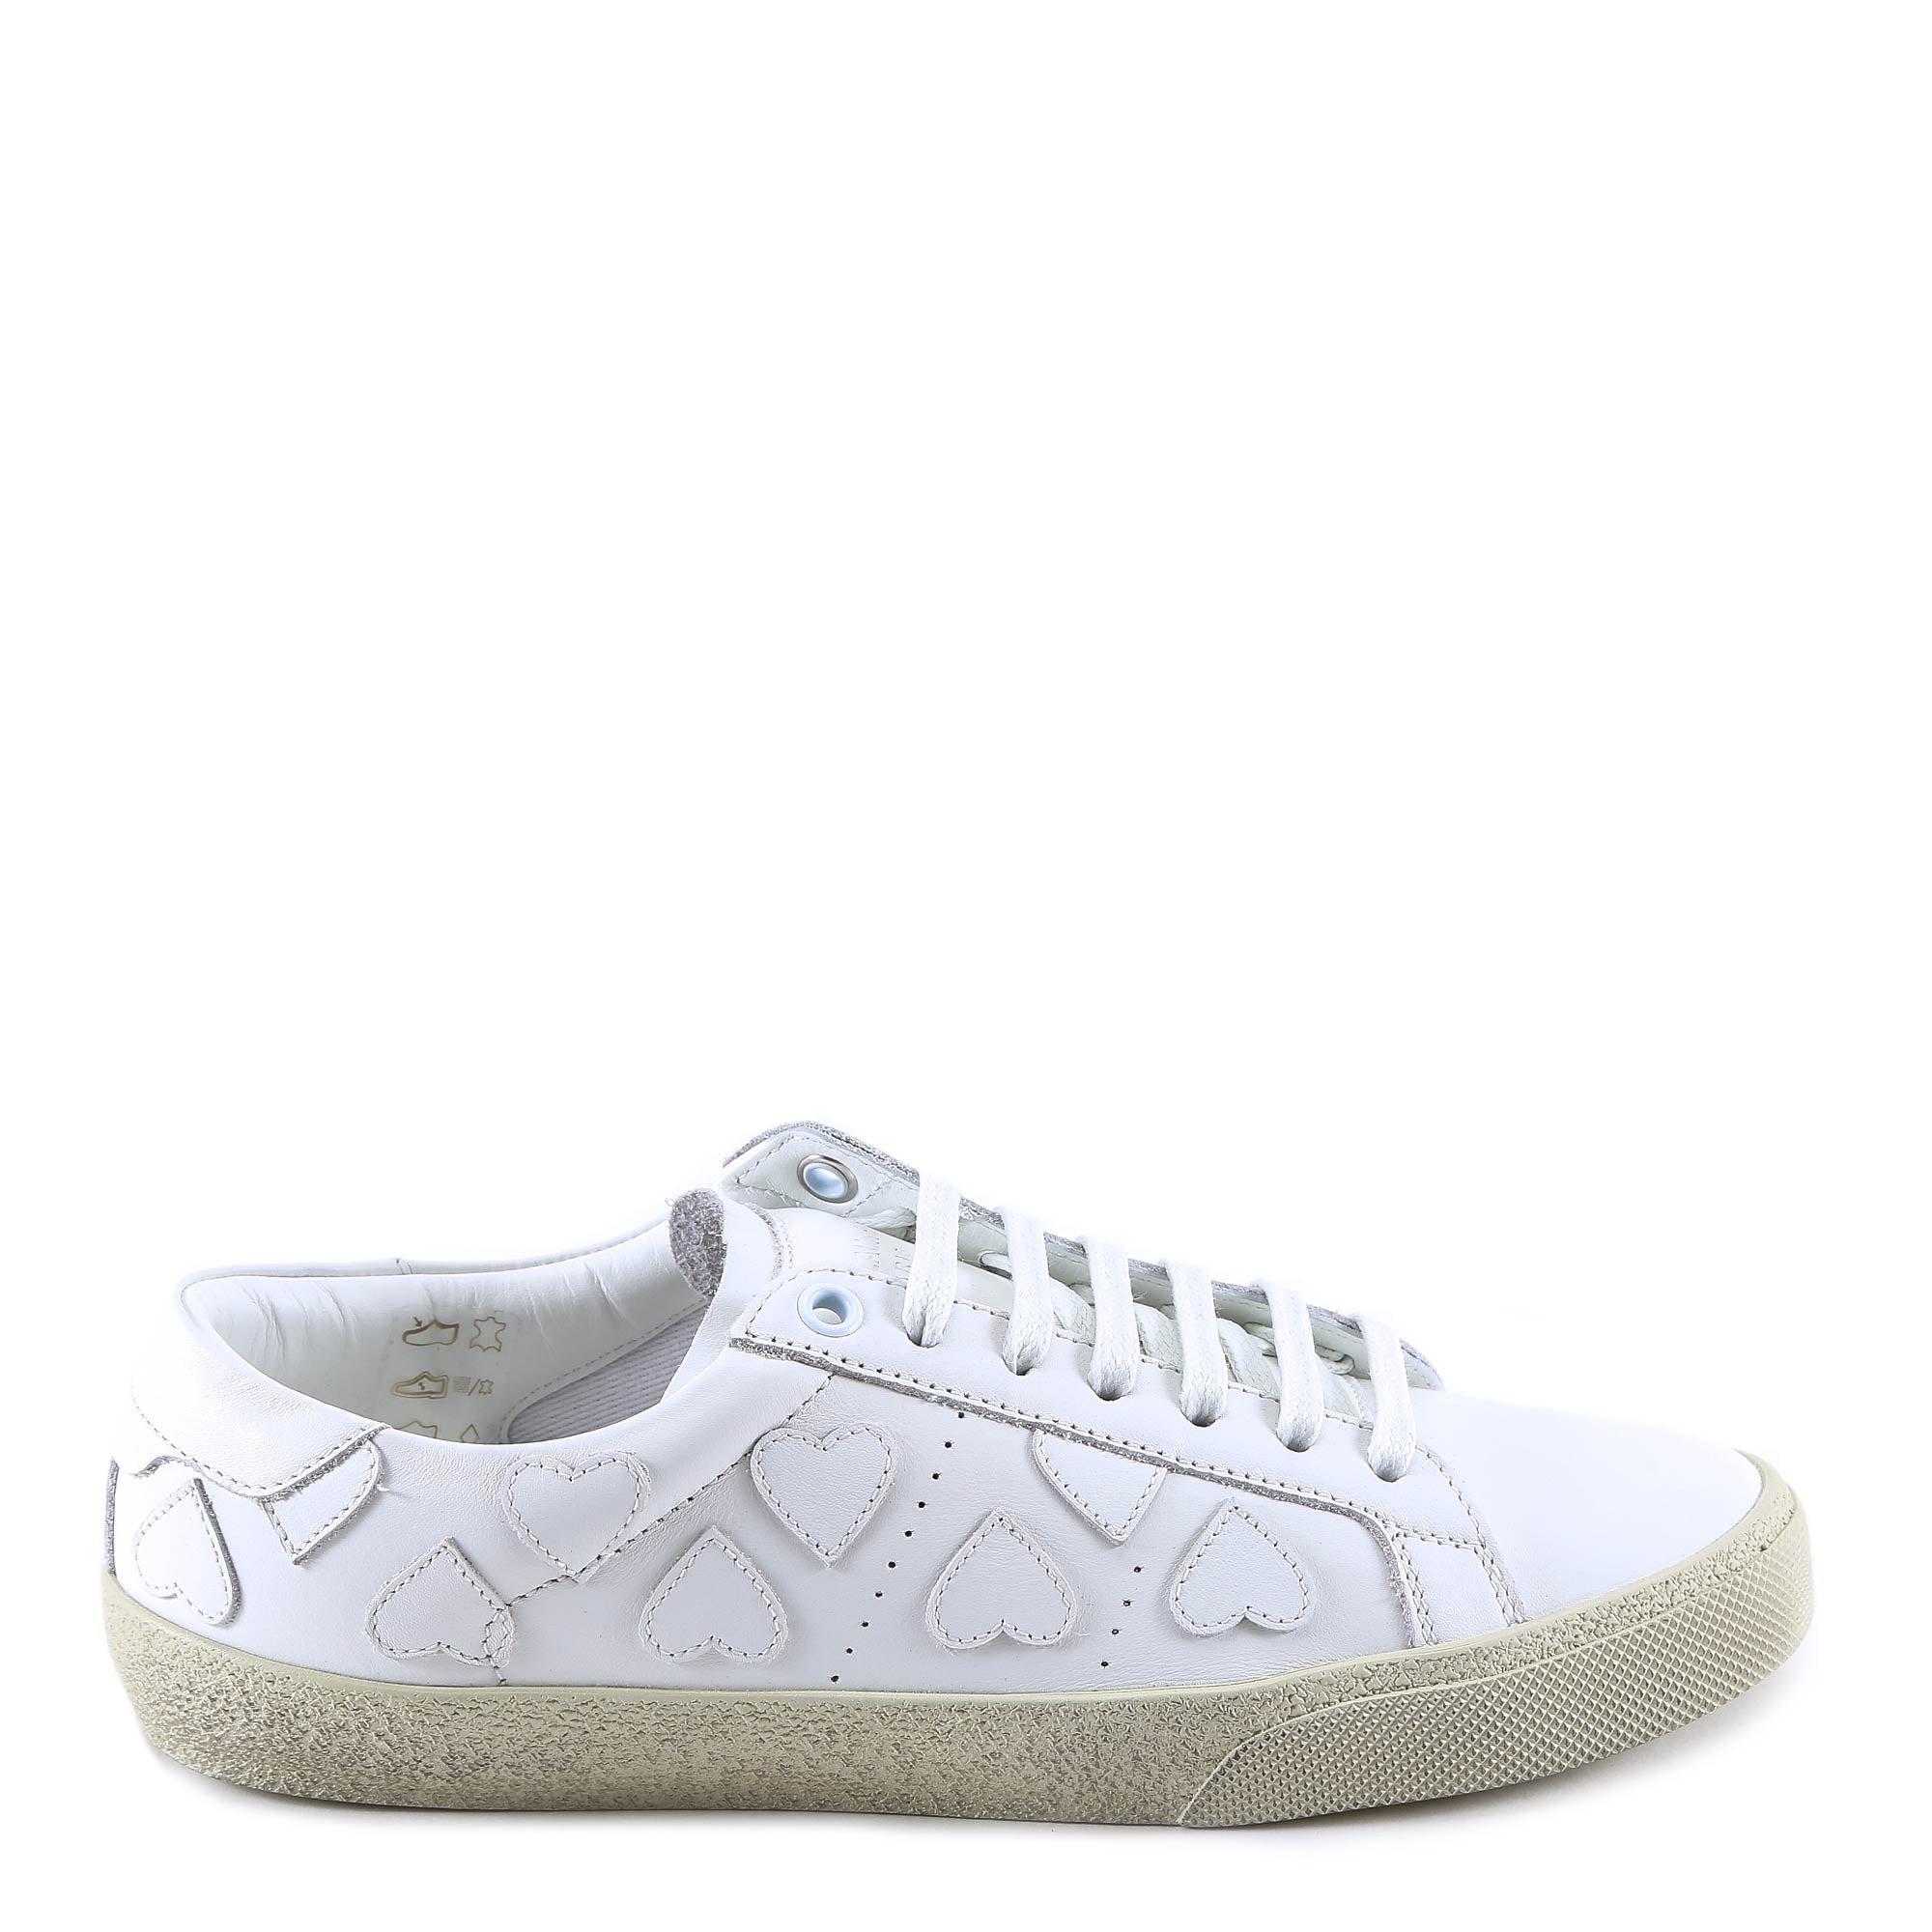 SAINT LAURENT COURT CLASSIC SL/01 HEART SNEAKERS